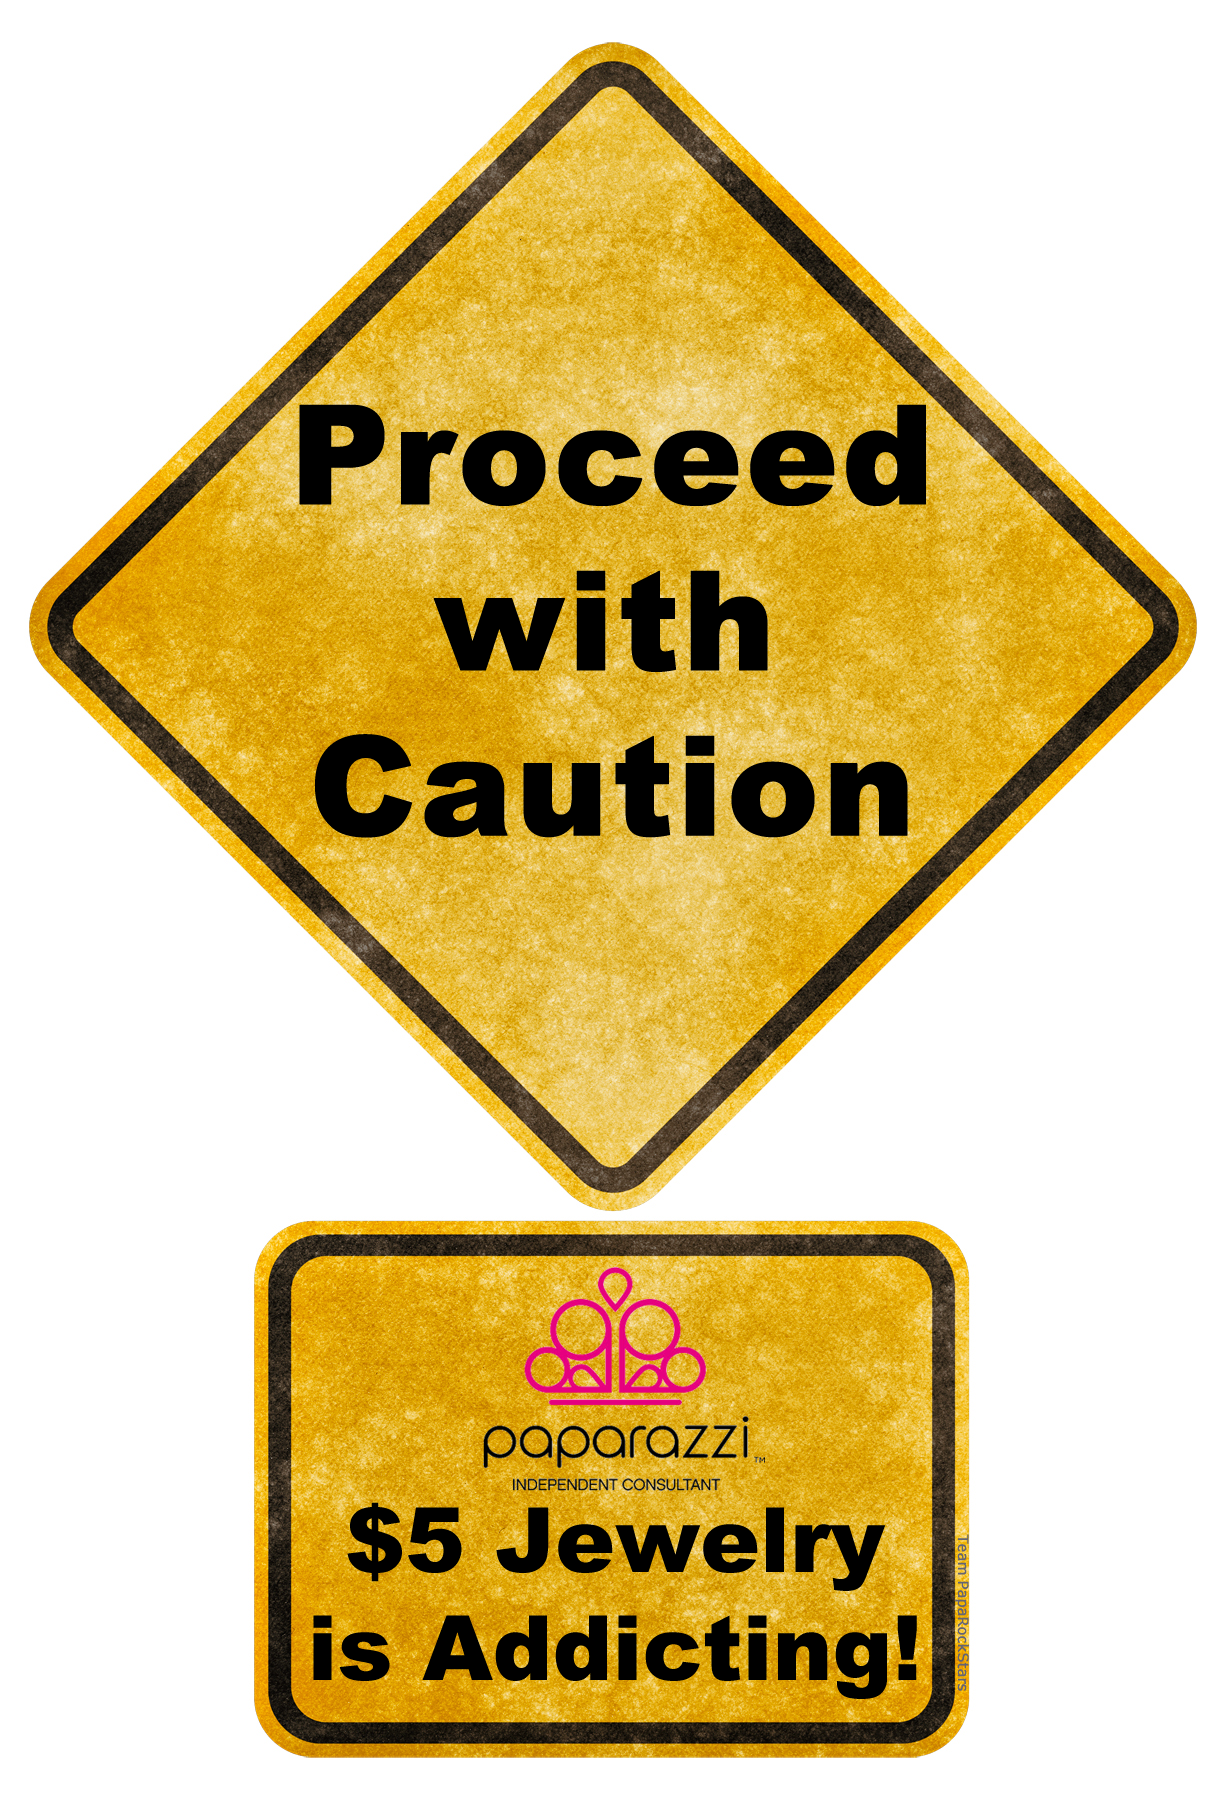 Proceed with Caution